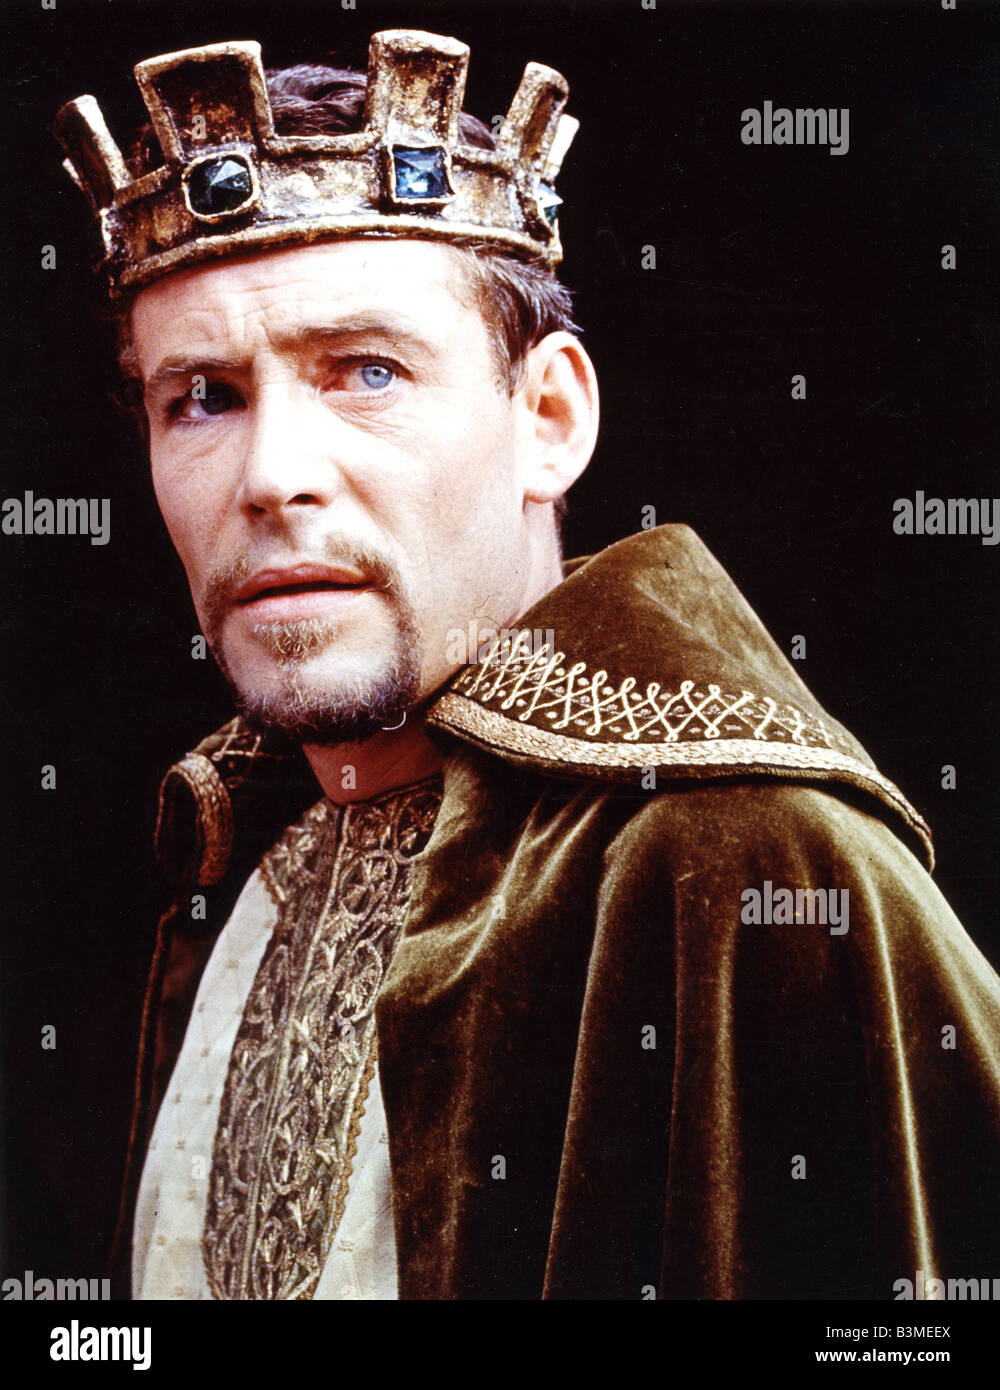 henry ii quarrel with beckett Murder of thomas becket henry's heated words were taken (2016) thomas becket 1119 – 1170 1169 the monarch for this period was henry ii.